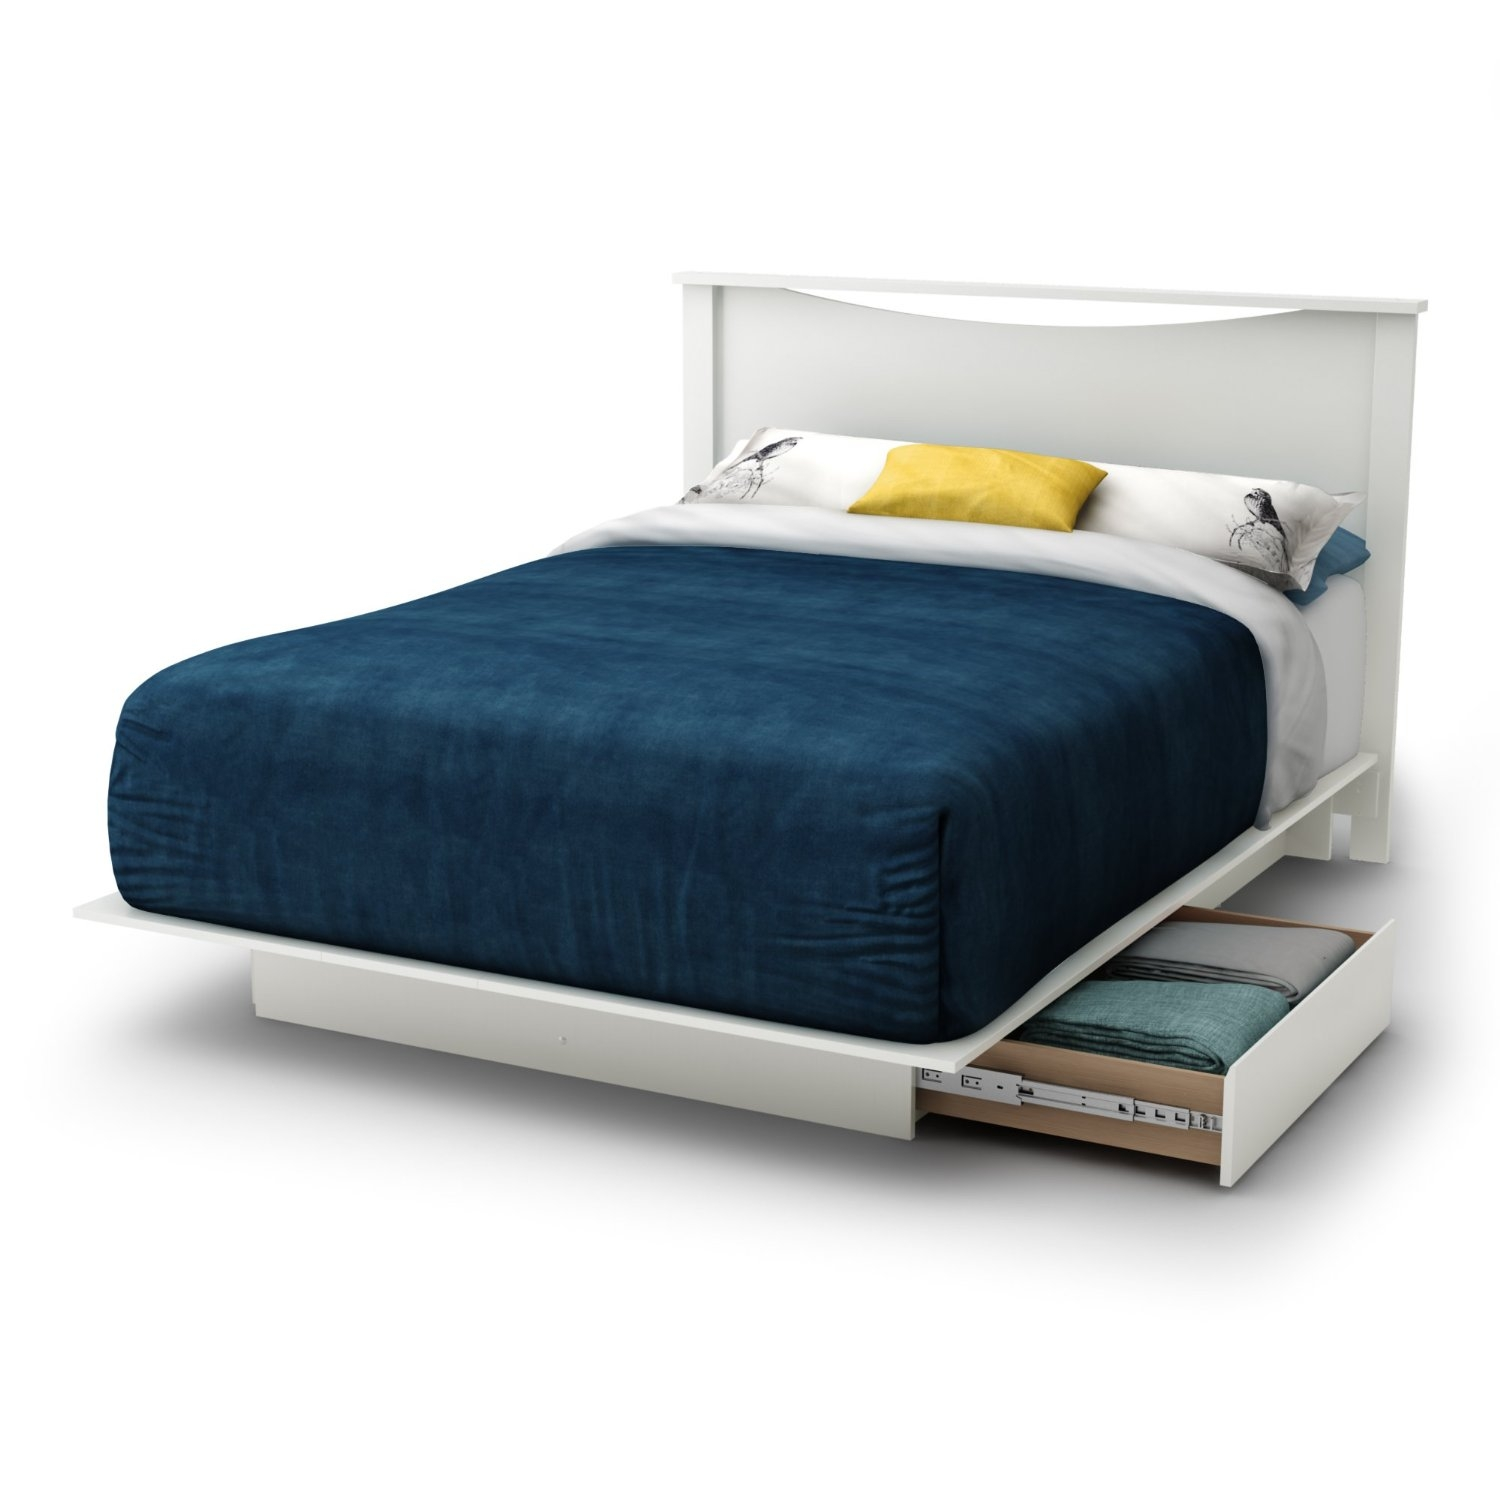 Full bed frame with storage - Retail Price 399 00